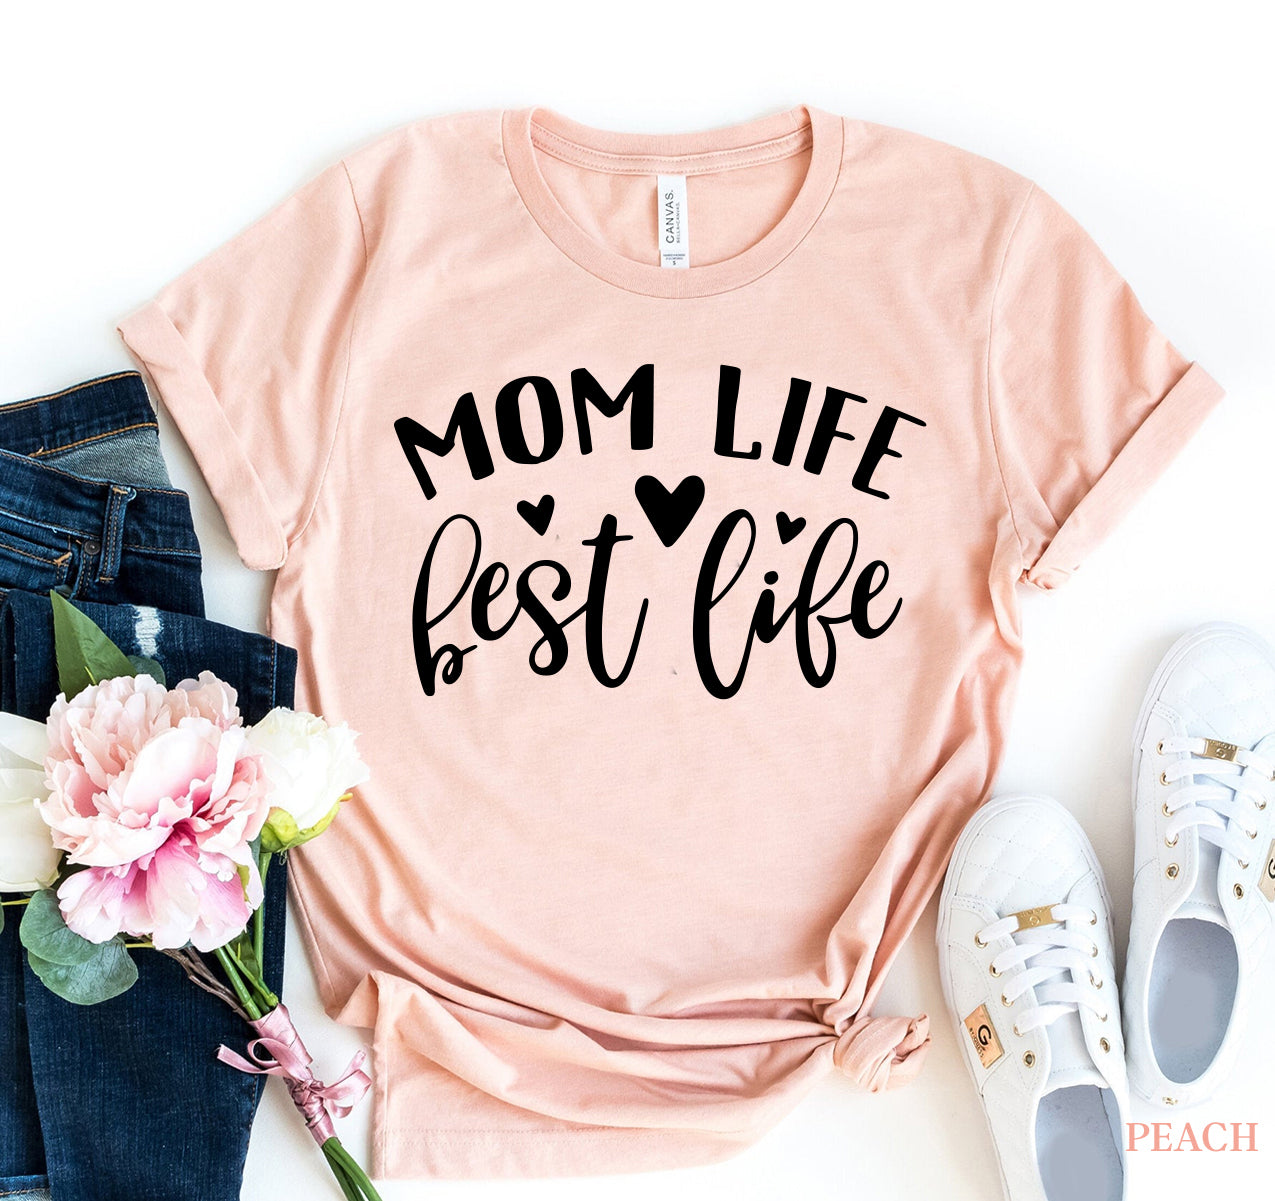 Mom Life Best Life T-shirt - Joy's Beauty Store